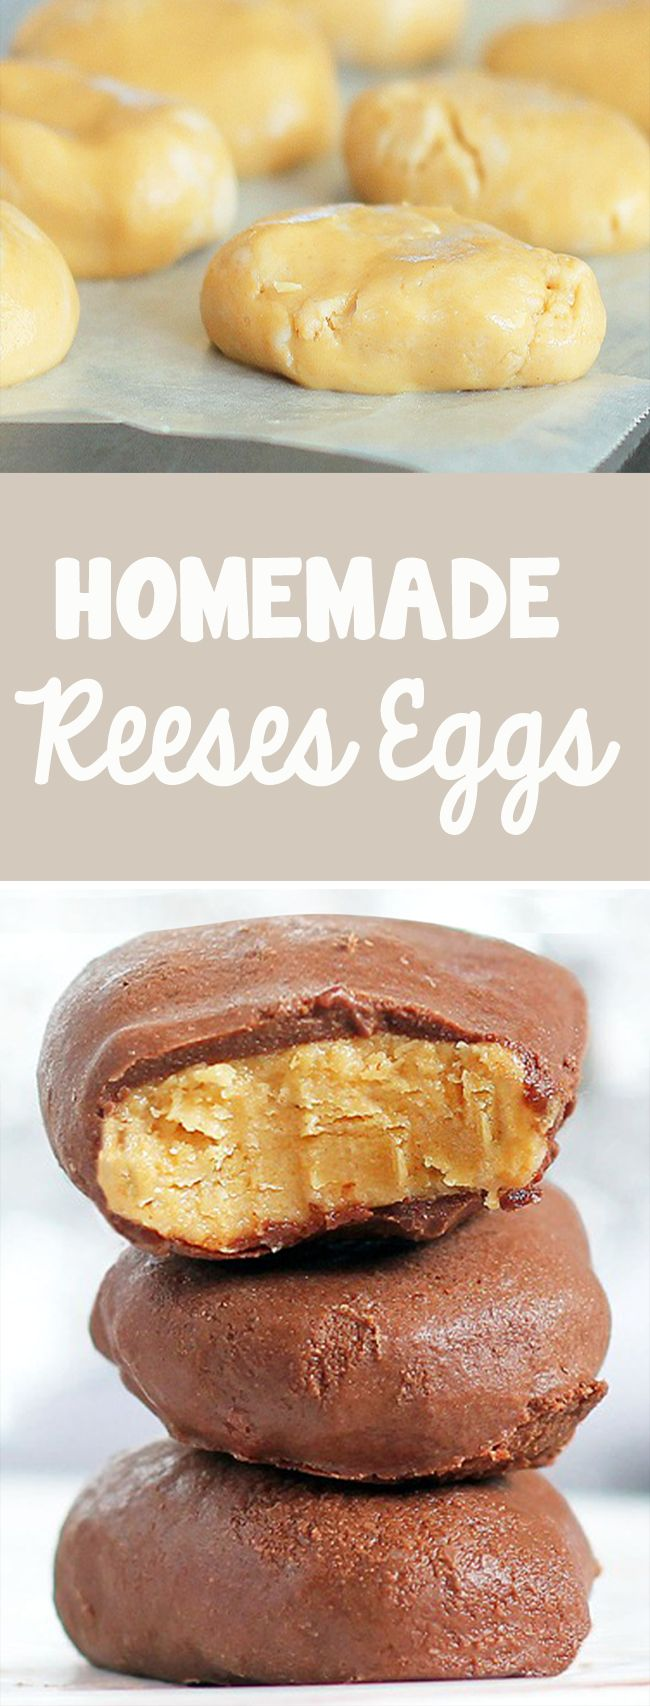 These are REALLY good! Just mix the ingredients, form patties, and dip in chocolate. 5 minutes and you're done! @choccoveredkt... Full recipe: http://chocolatecoveredkatie.com/2012/03/29/copycat-recipe-reeses-peanut-butter-eggs/